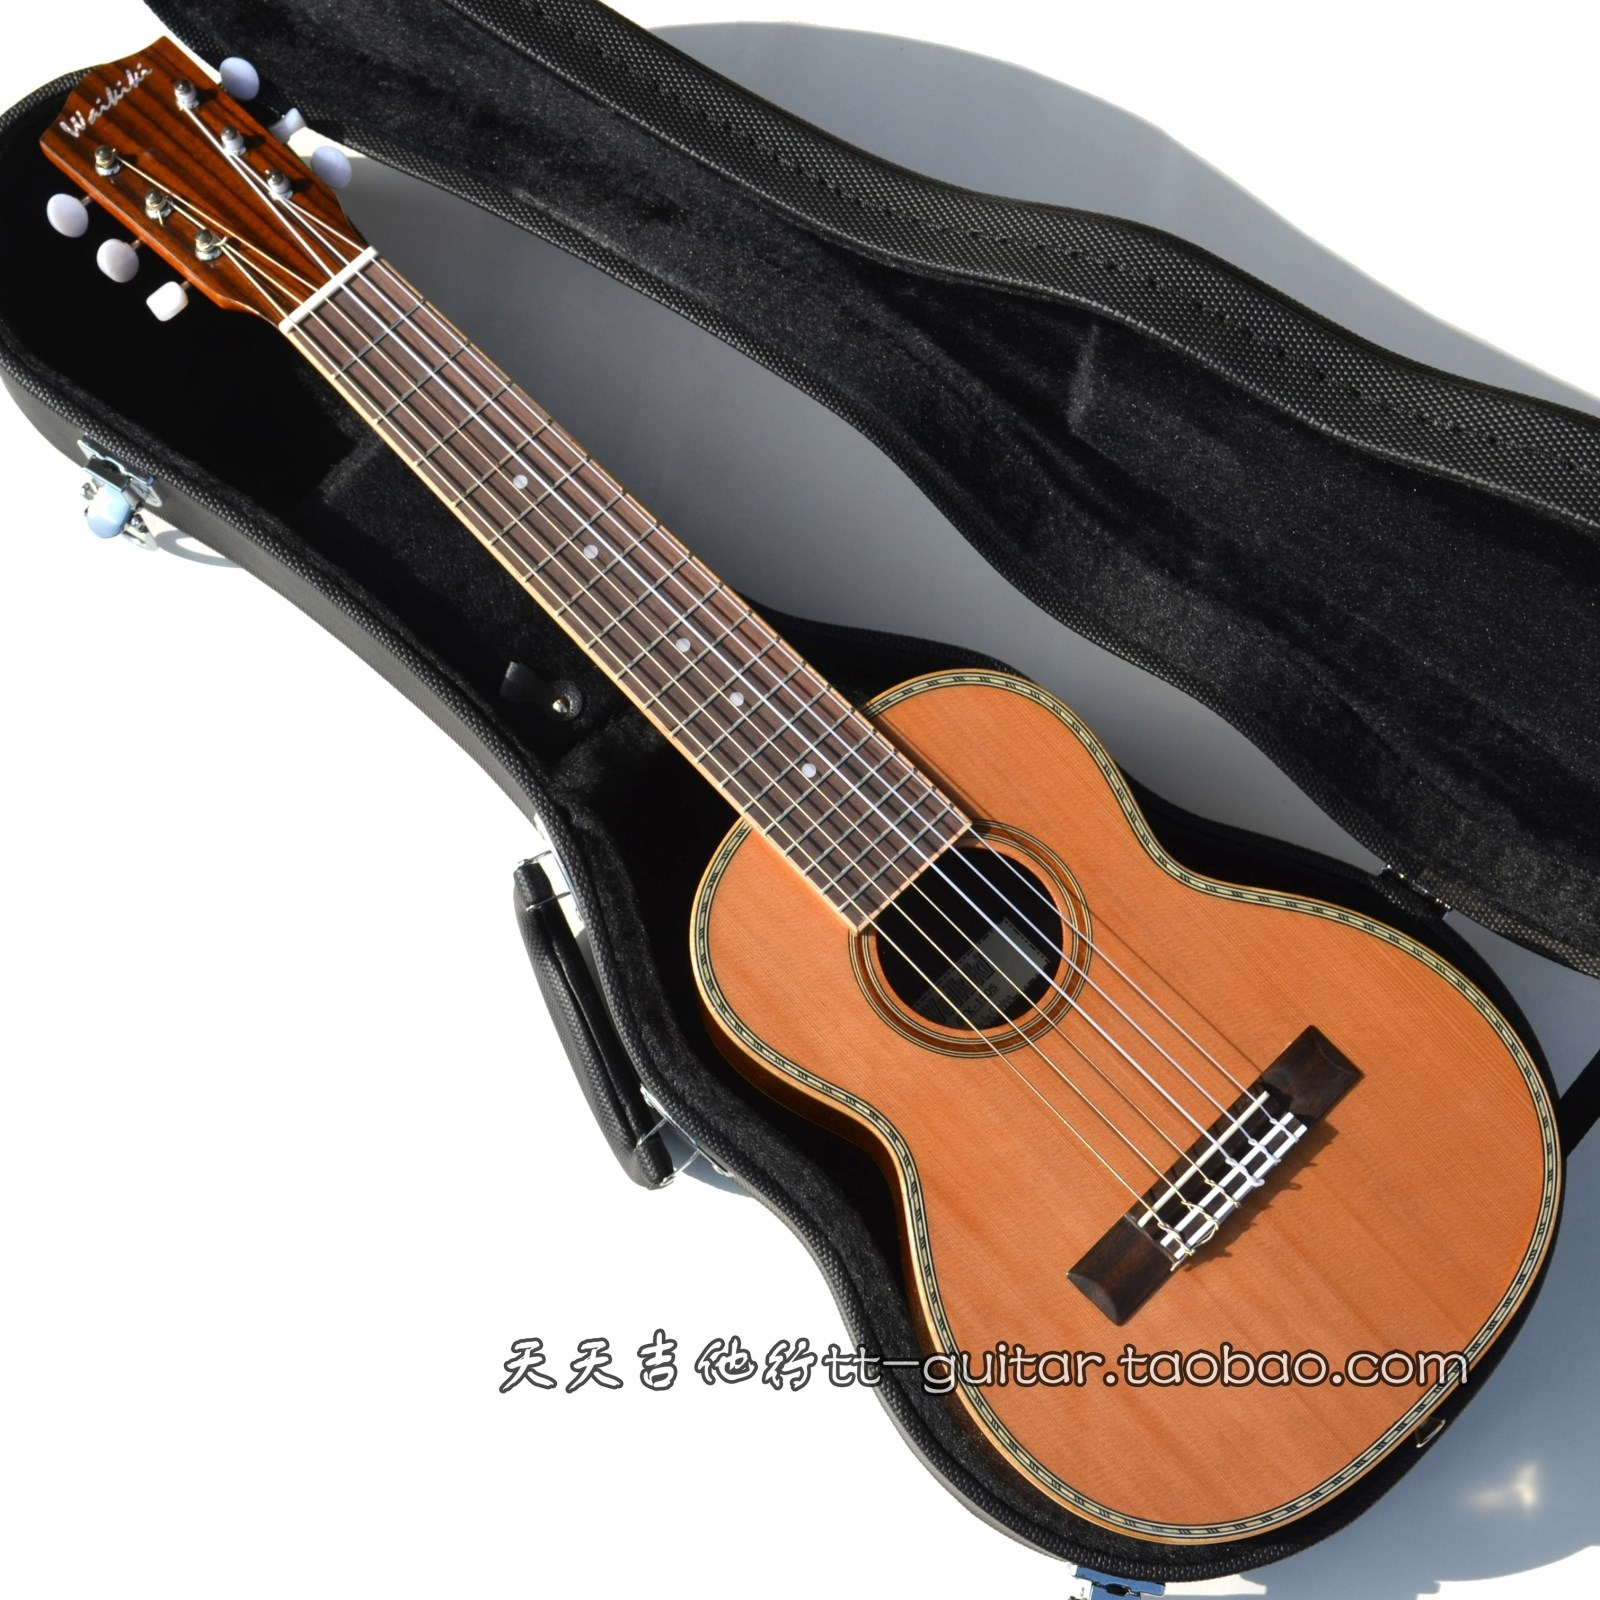 Гитара Waikiki Guitarlele GTK-150S 26 toner for samsung sl2020 w mlt1112 see mltd 1113 s xaa xpress sl m2071 hw new copier cartridge free shipping